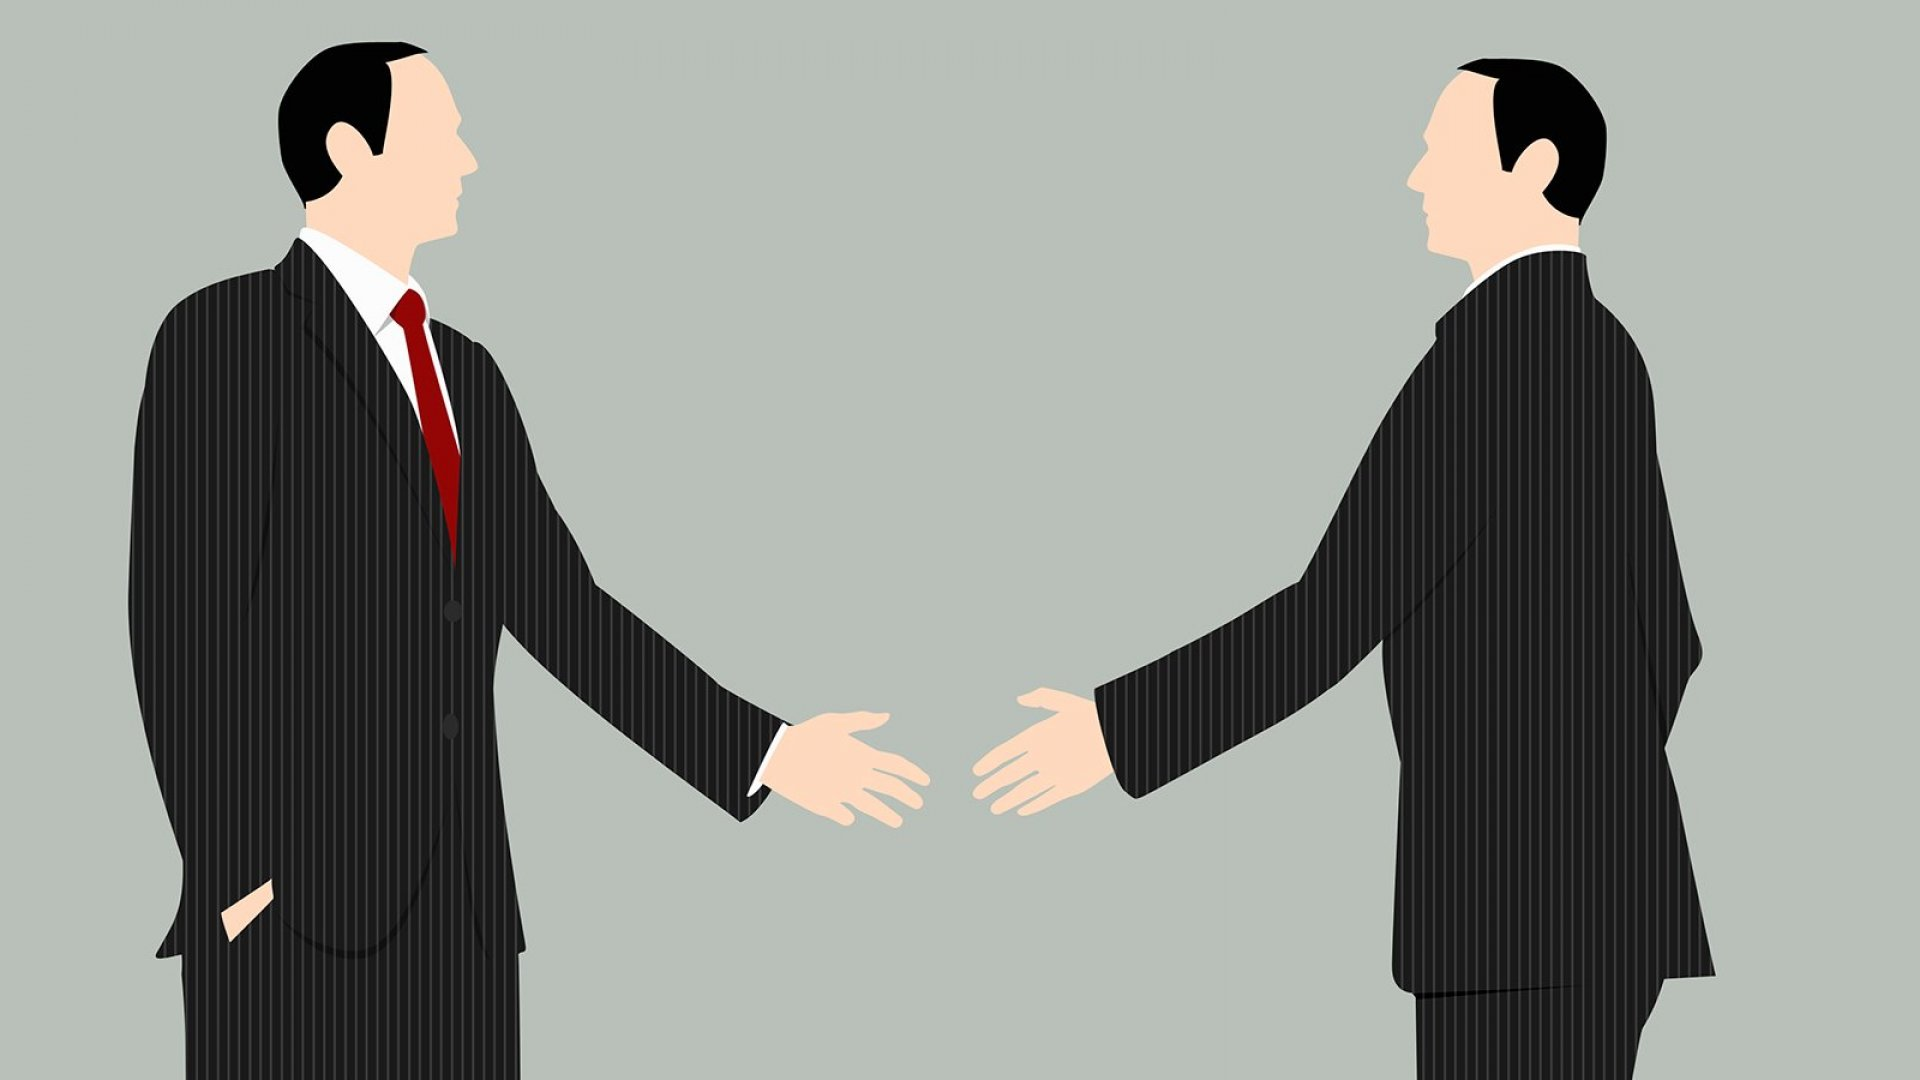 To Be More Likable and Make a Great First Impression, Science Says First Do 1 Thing